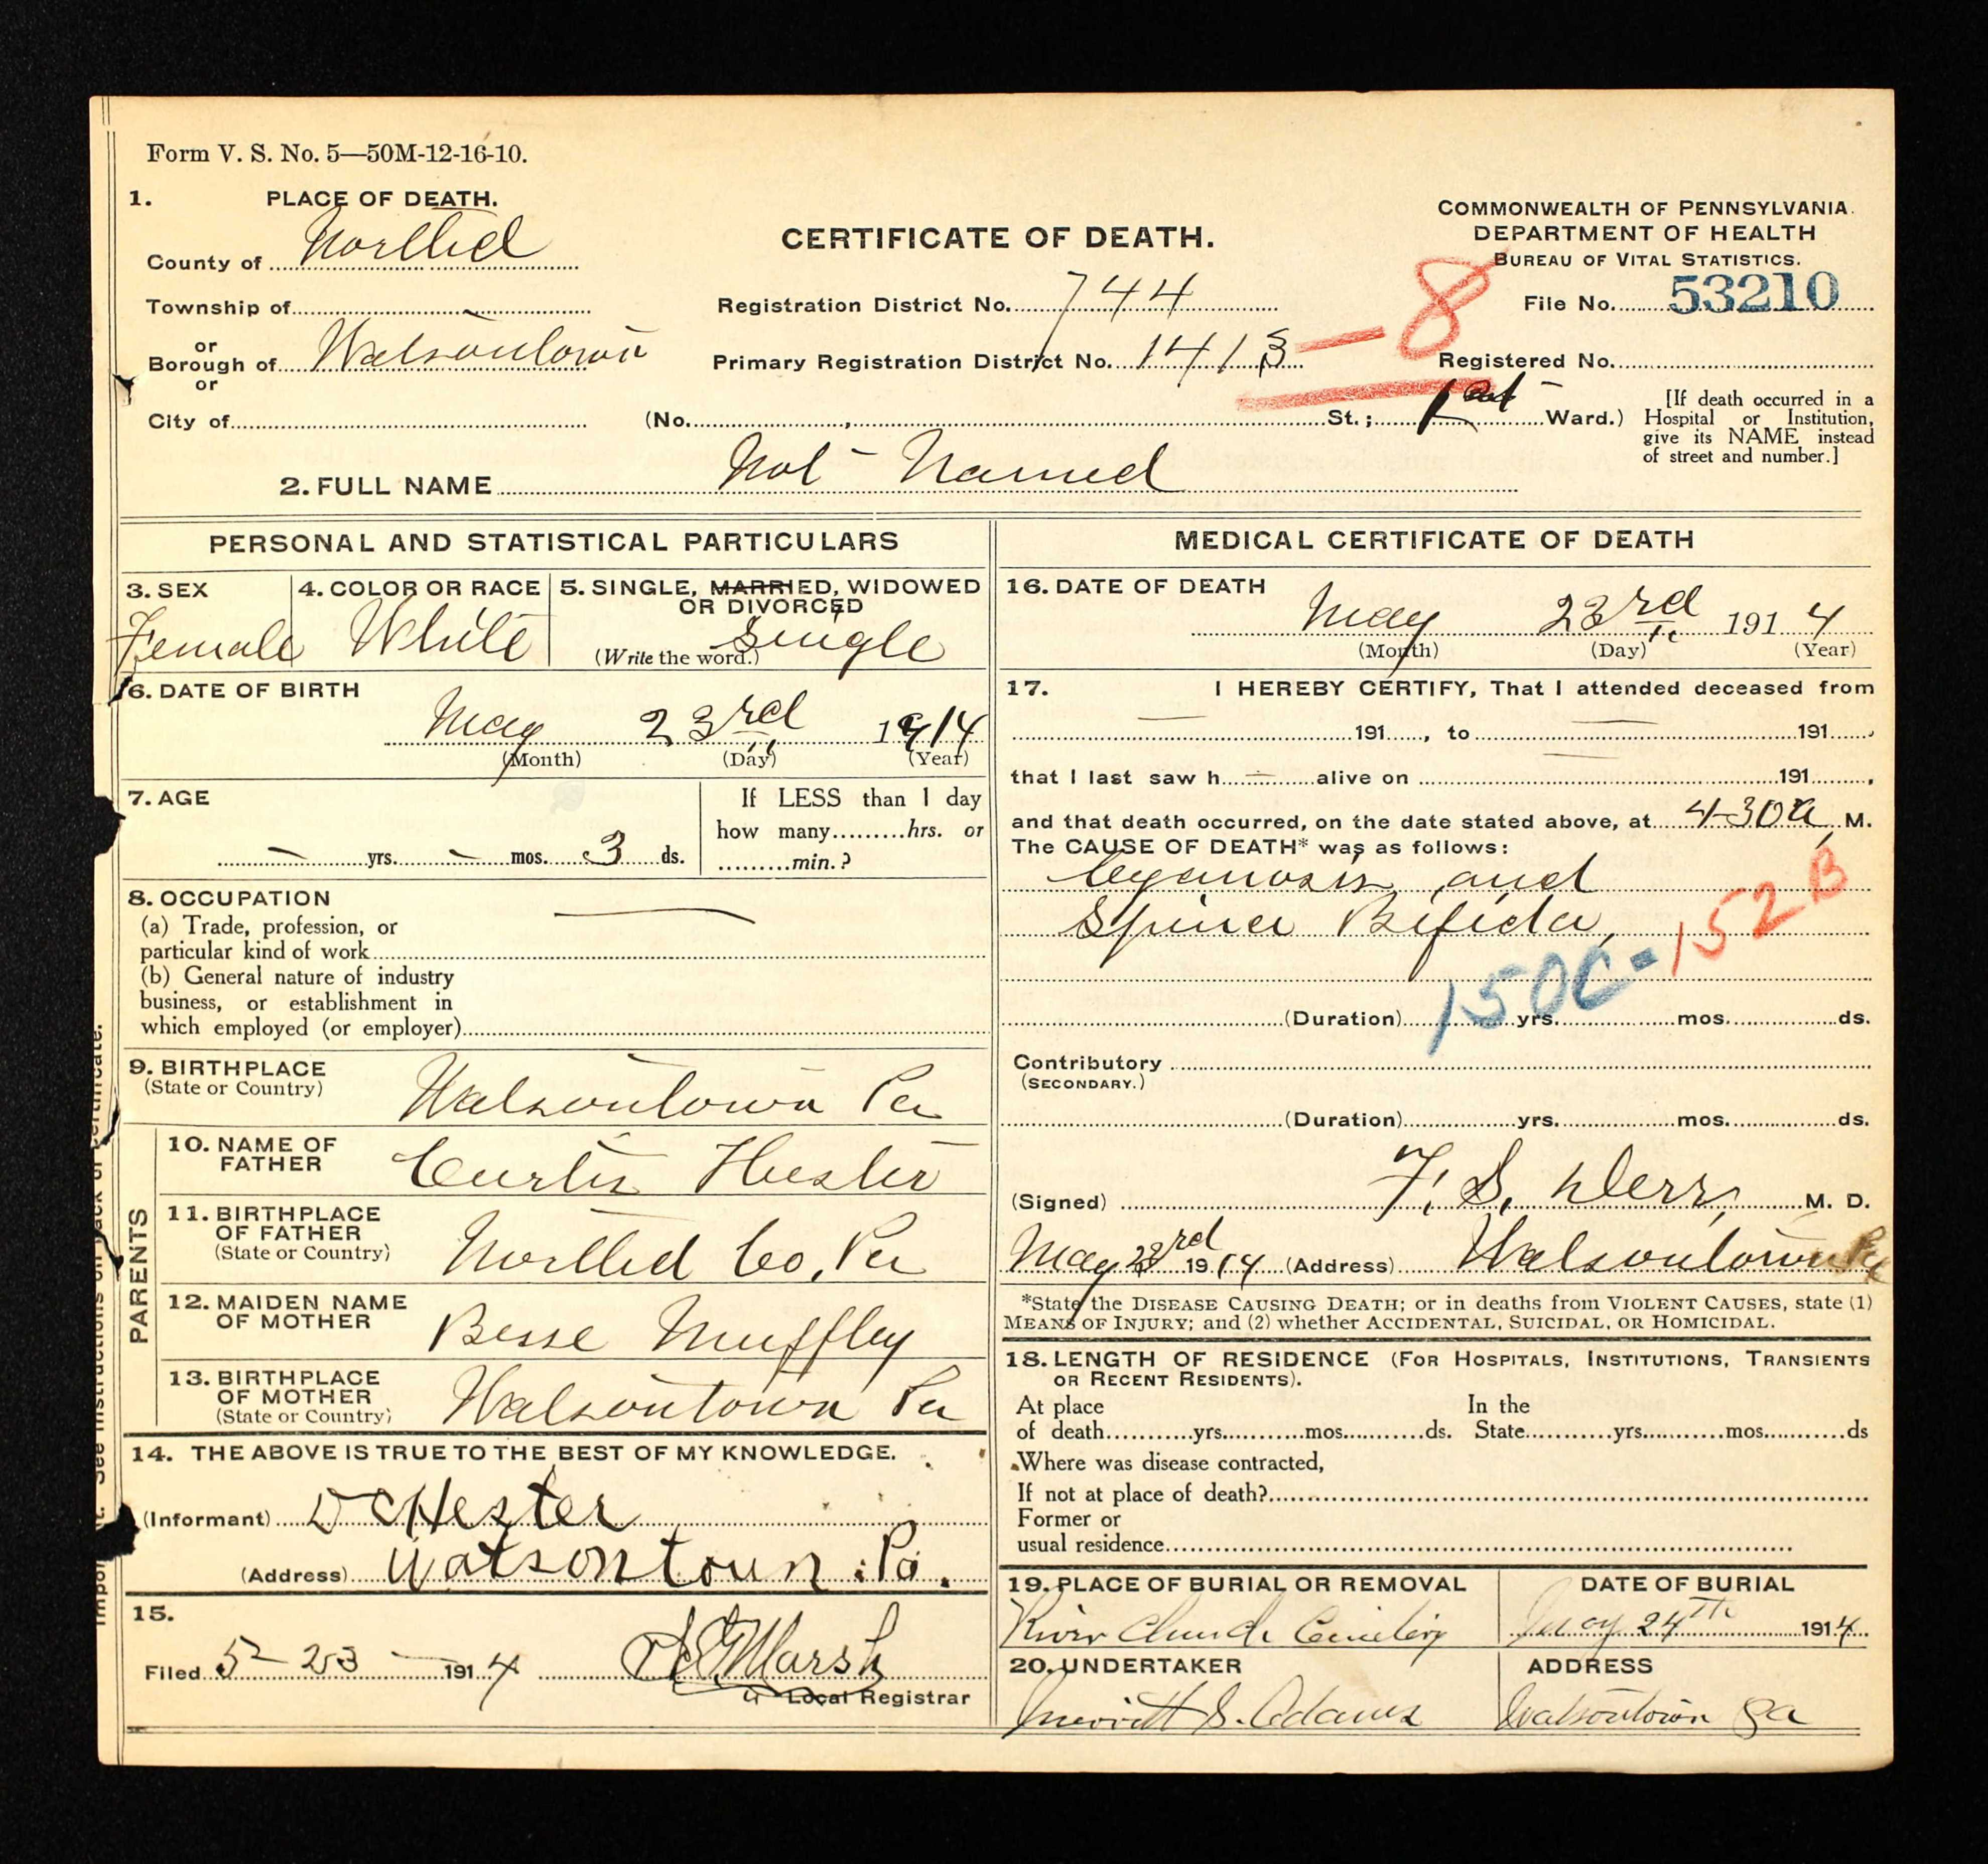 Baby hesters death certificate a hundred years ago hester baby death certificate 5 23 1914 xflitez Gallery